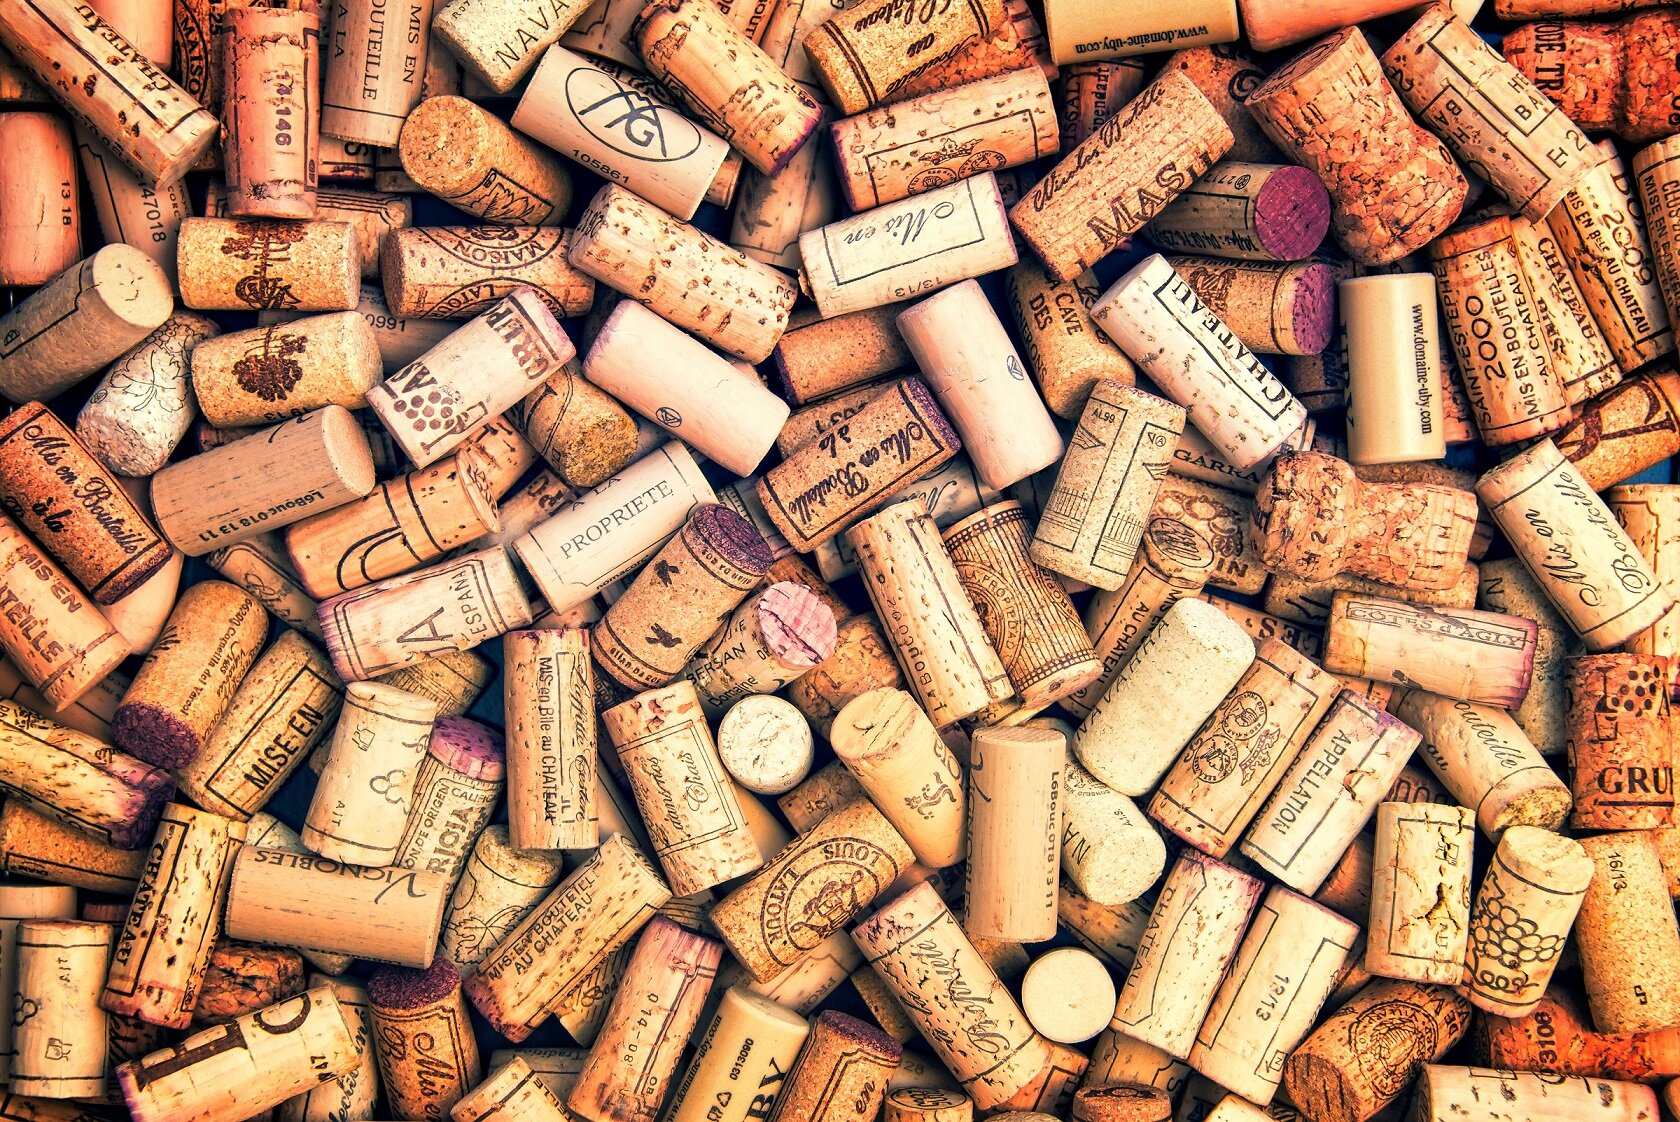 Put a cork in it? Or maybe you prefer a screwcap? - Image Credit: Delpixel via Shutterstock - HDR tune by Universal-Sci